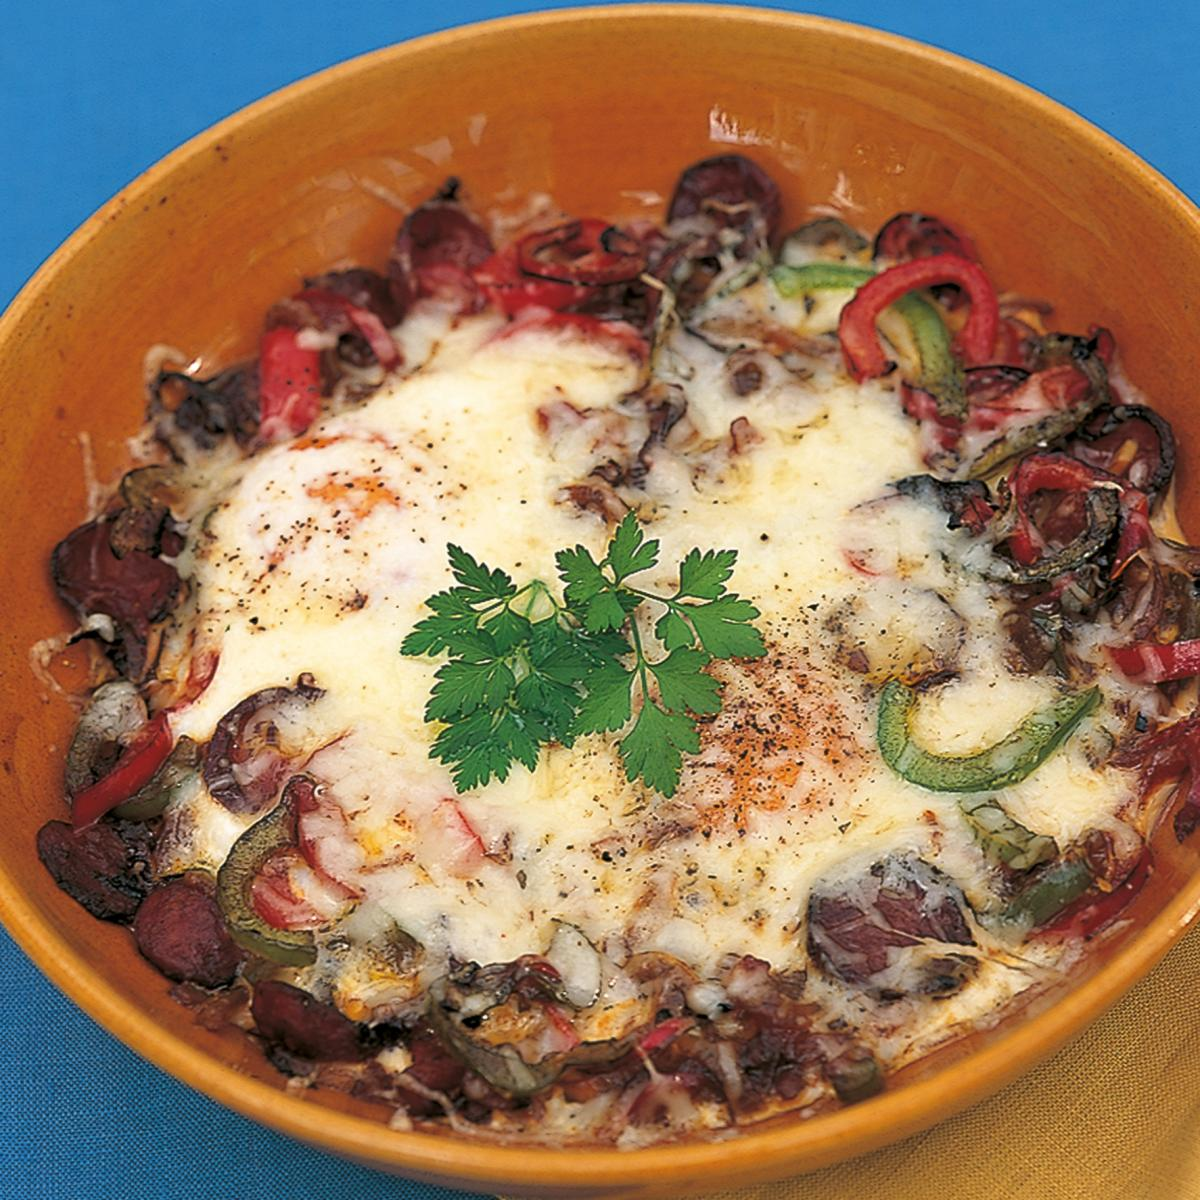 Htc gratin of eggs with peppers and chorizo